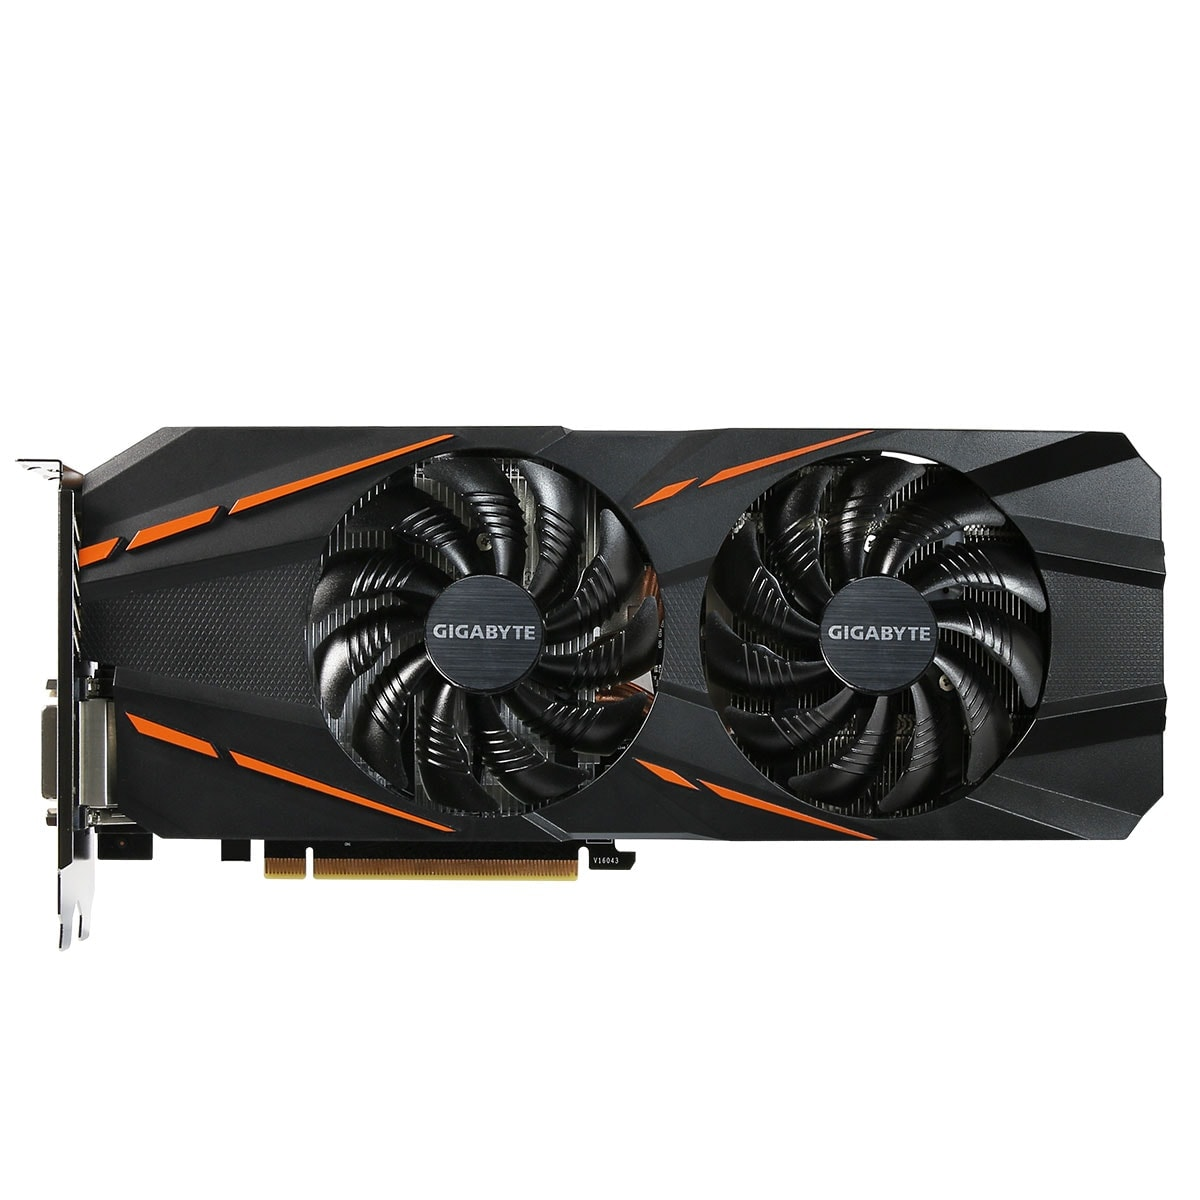 Gigabyte GeForce GTX 1060 G1 Gaming-6GD (GTX1060 G1 Gaming-6GD) - Achat / Vente Carte Graphique sur Cybertek.fr - 2